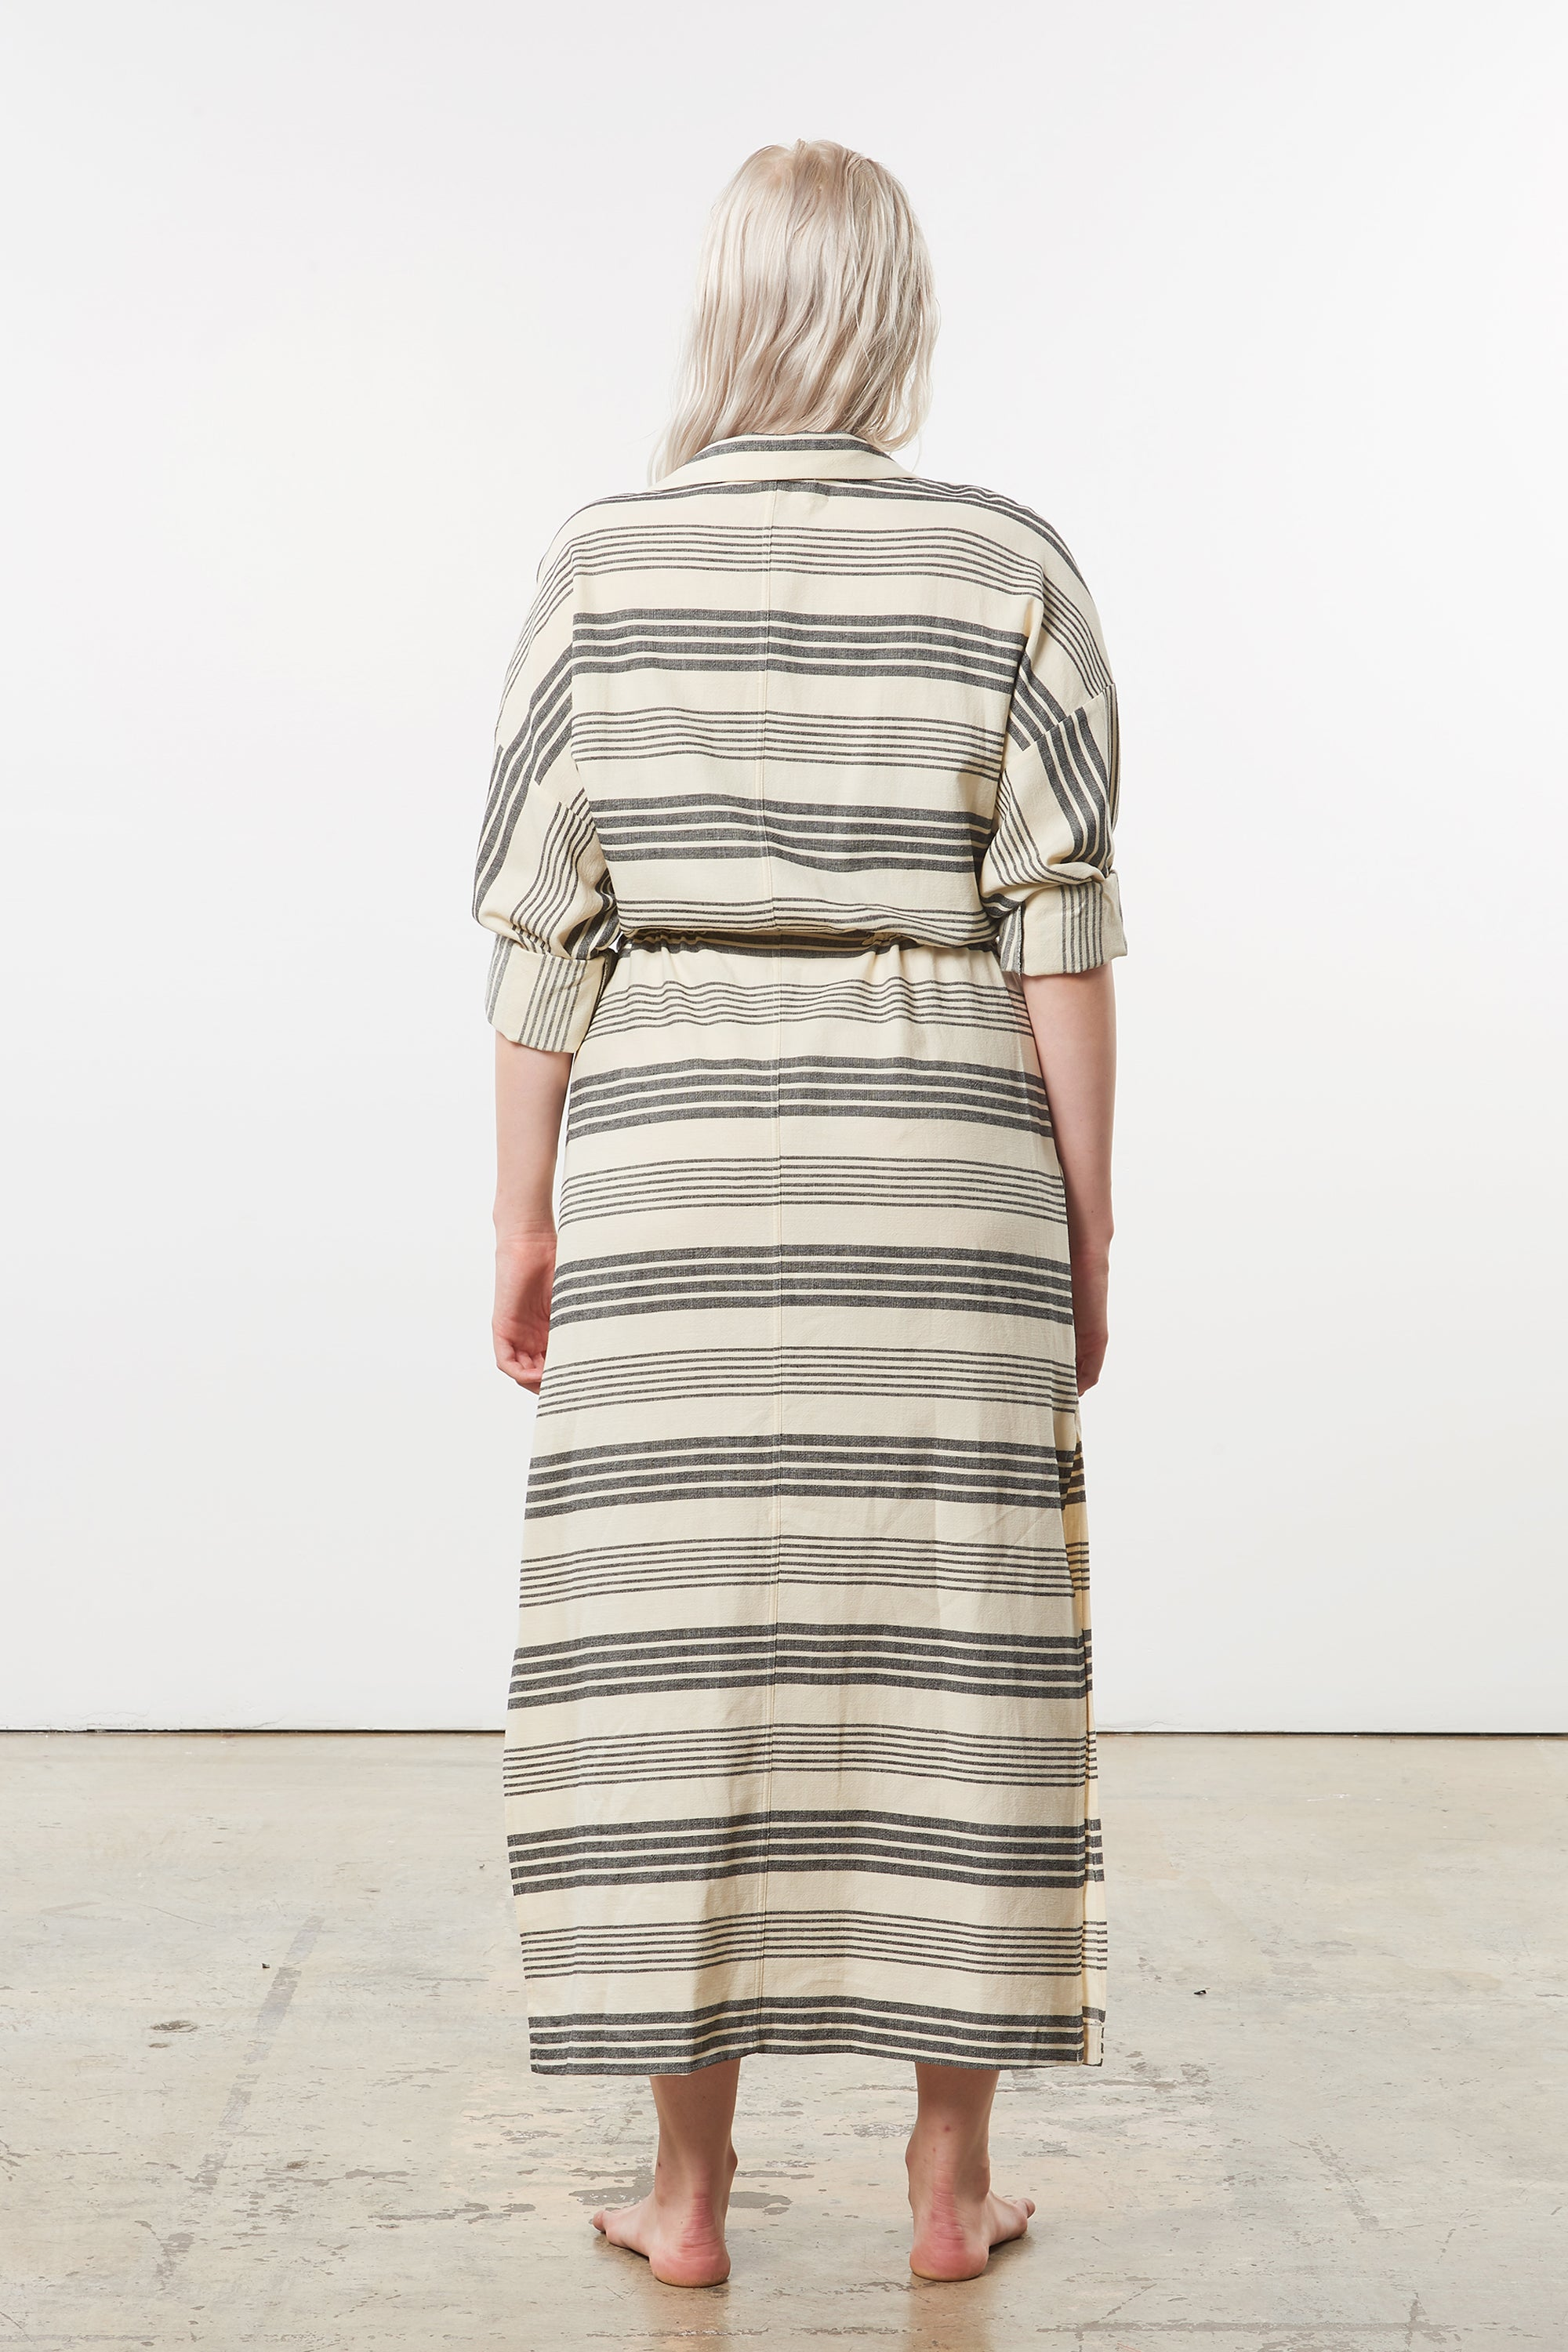 Mara Hoffman Extended Diega Coverup Dress in black striped cotton TENCEL Lyocell blend (back)